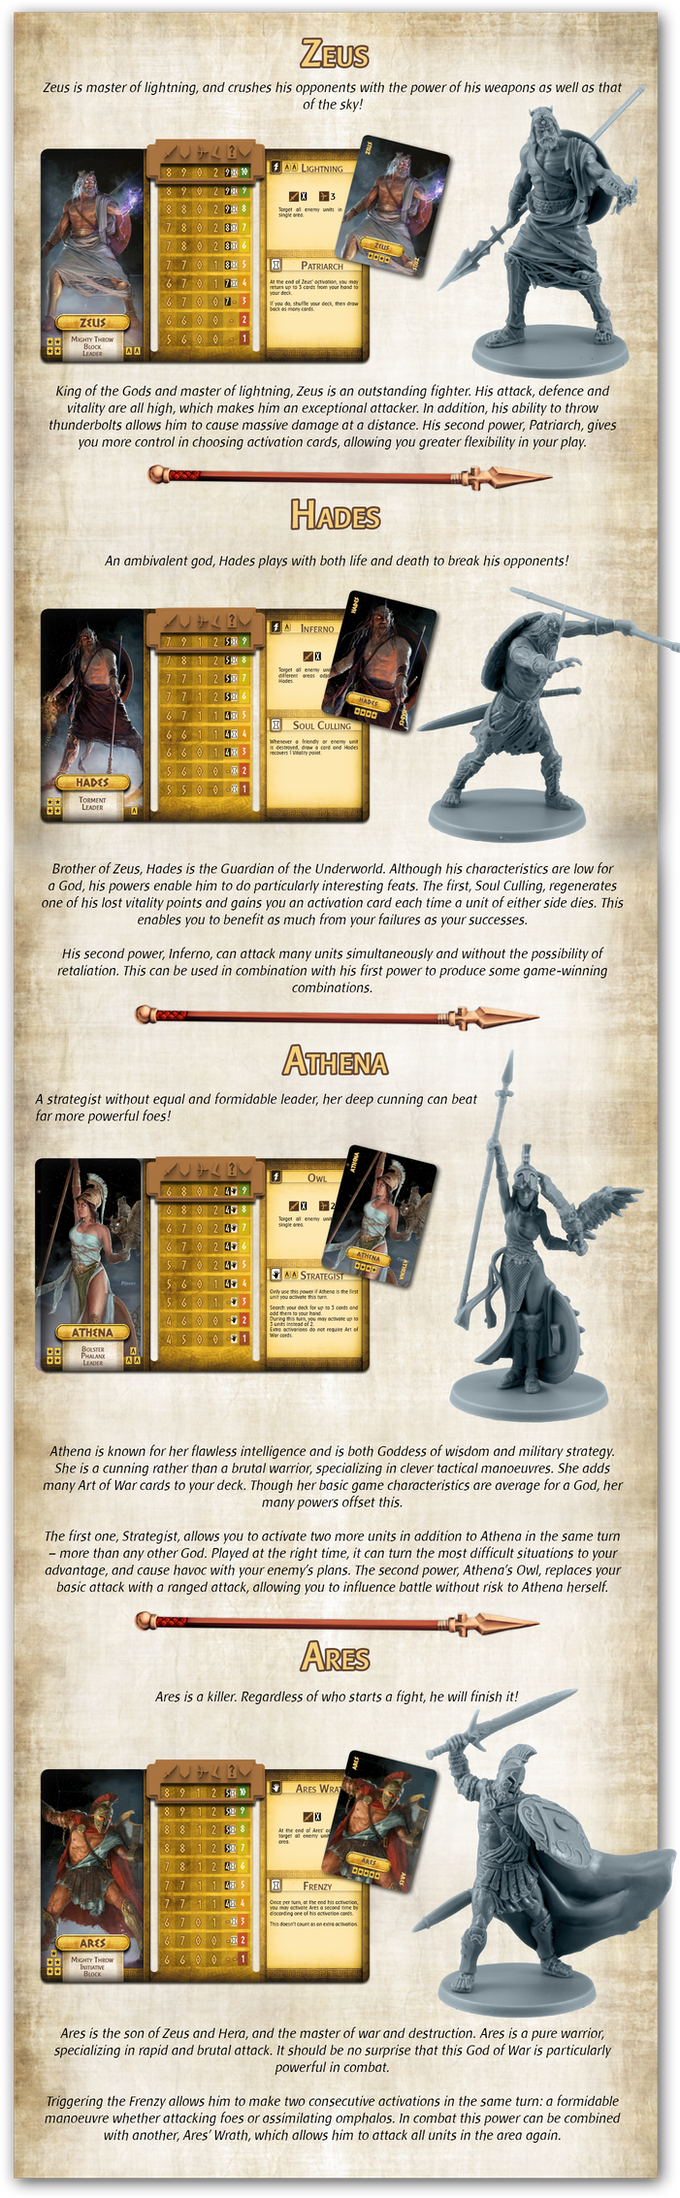 Mythic Battles: Pantheon 1 5 by Monolith Board Games LLC